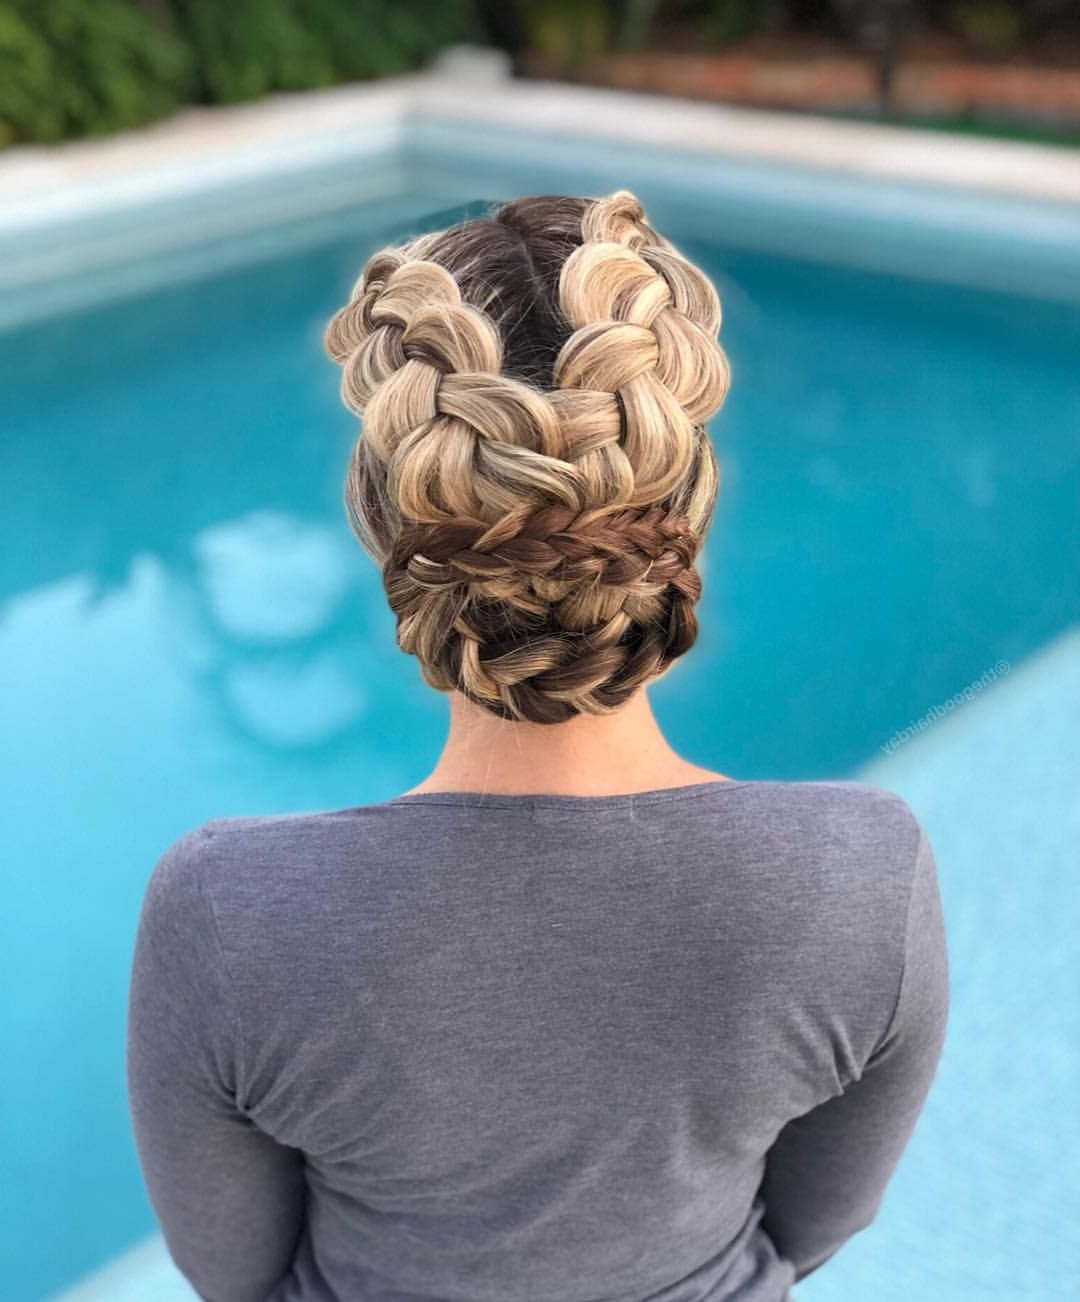 Criss Cross Dutch Braids Into A Braided Bun ✌🏻 (View 7 of 20)